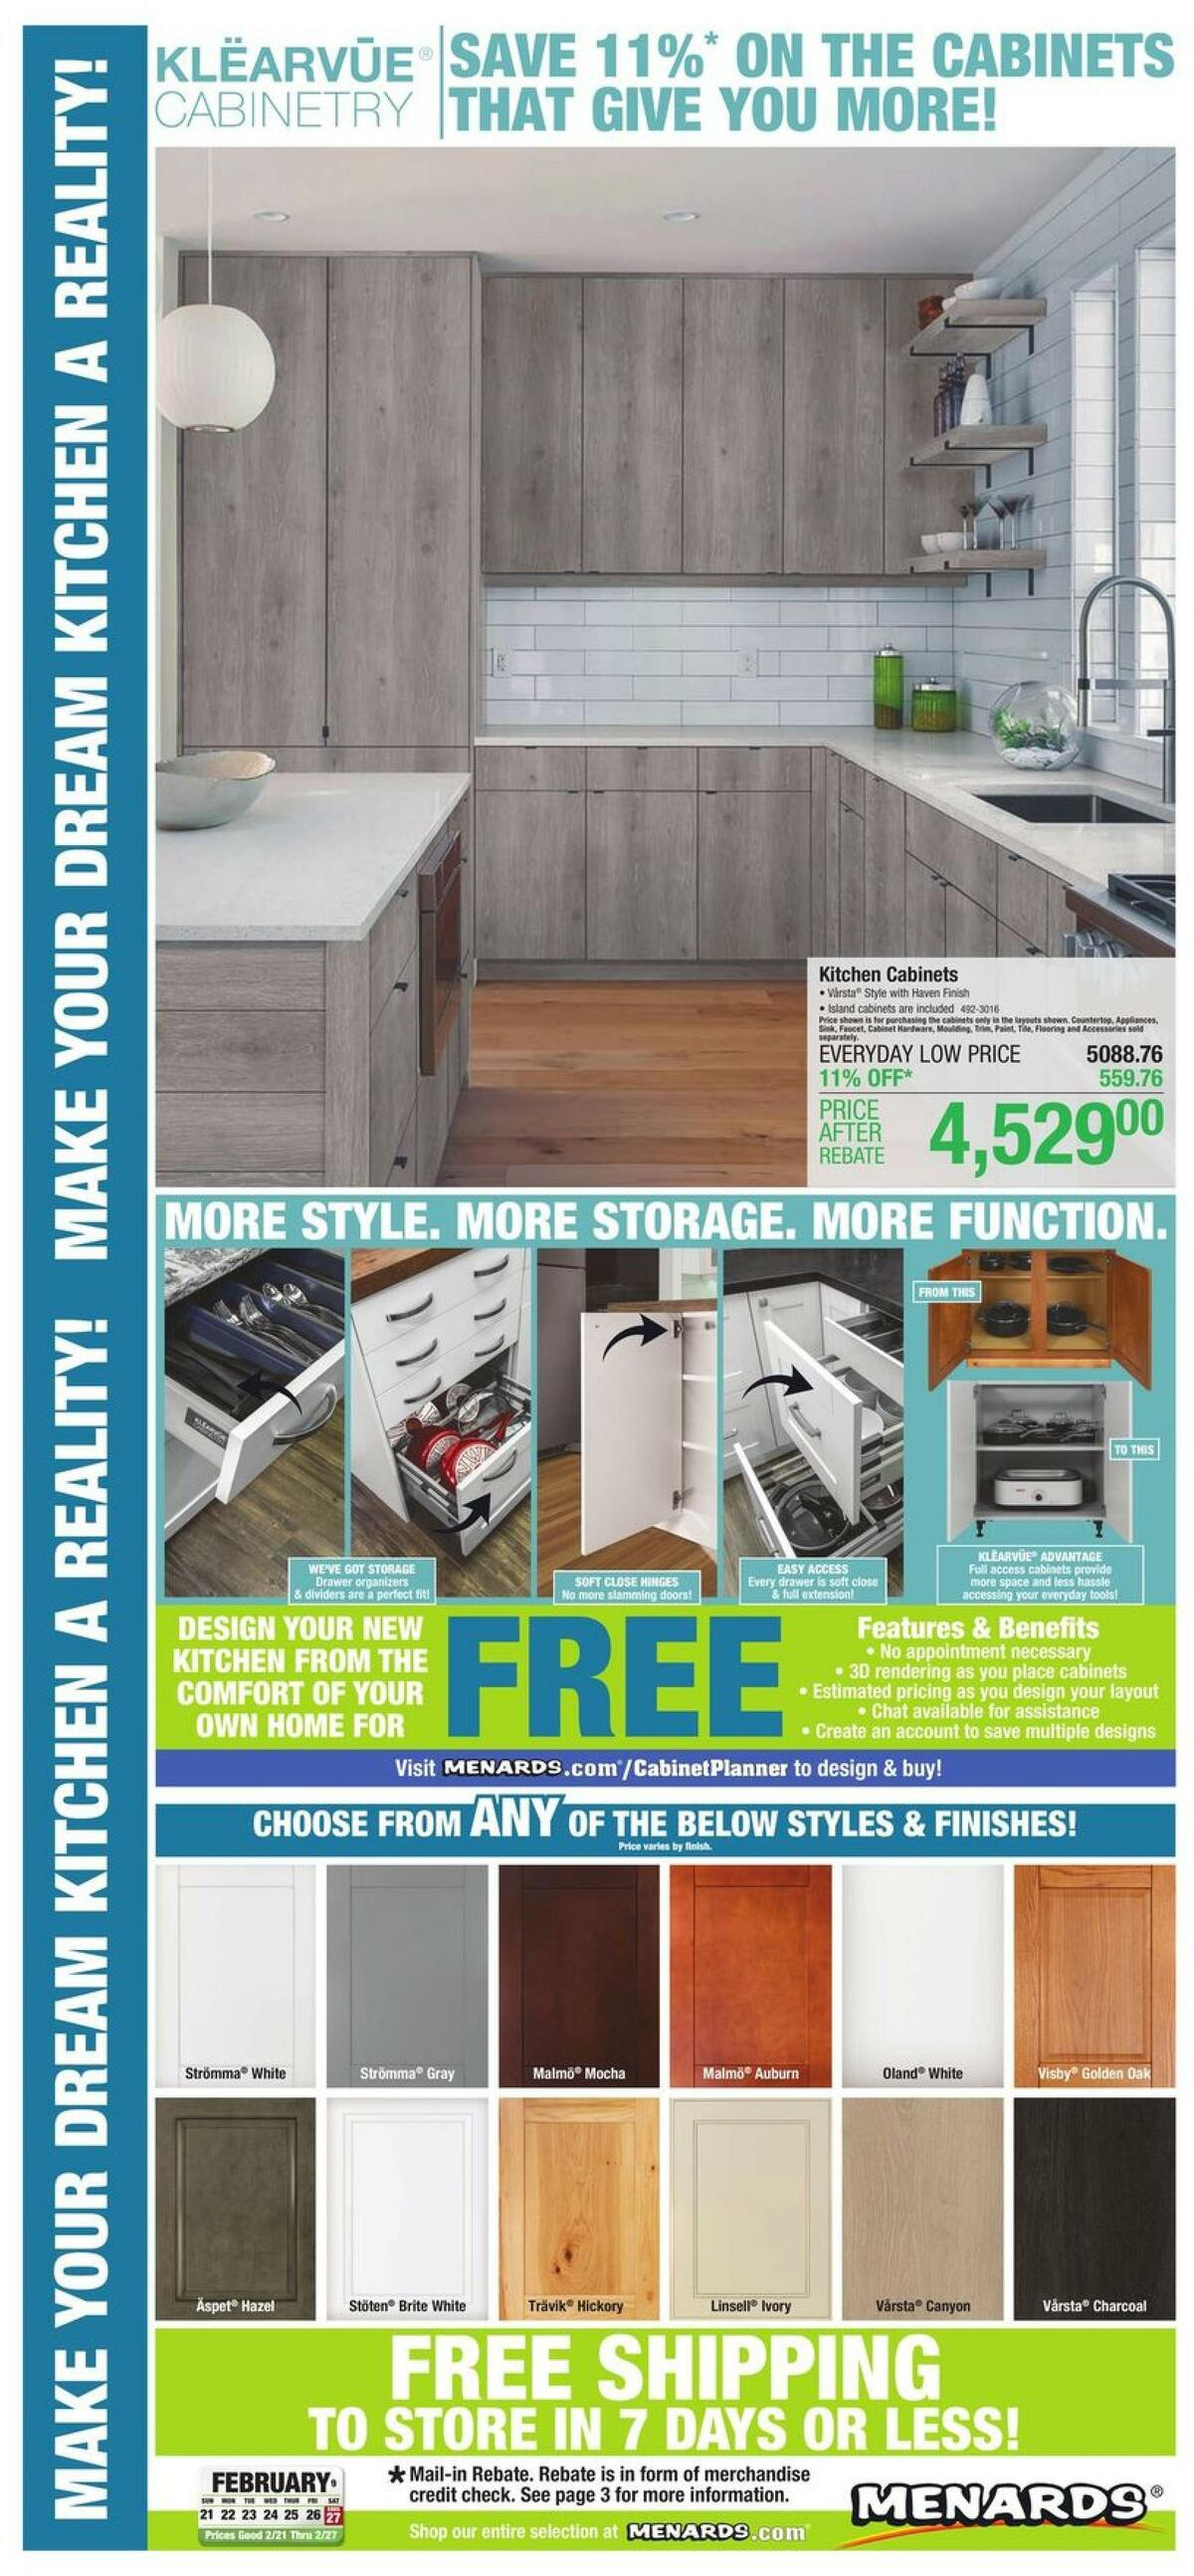 Menards Kitchen Cabinets Weekly Ad from February 21